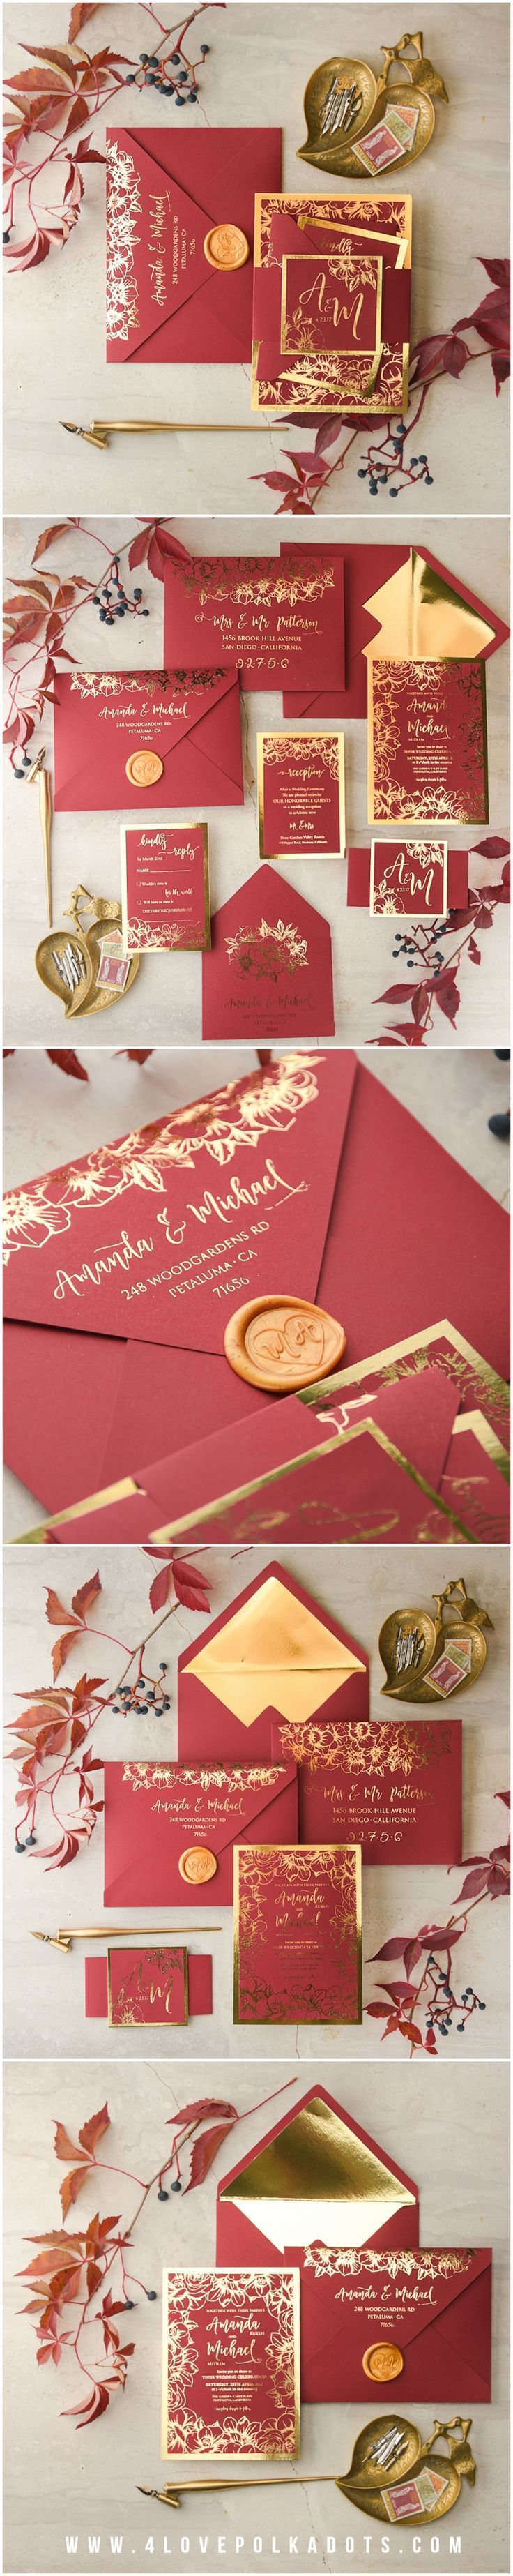 152 best Wedding Stationery images on Pinterest | Wedding stationery ...